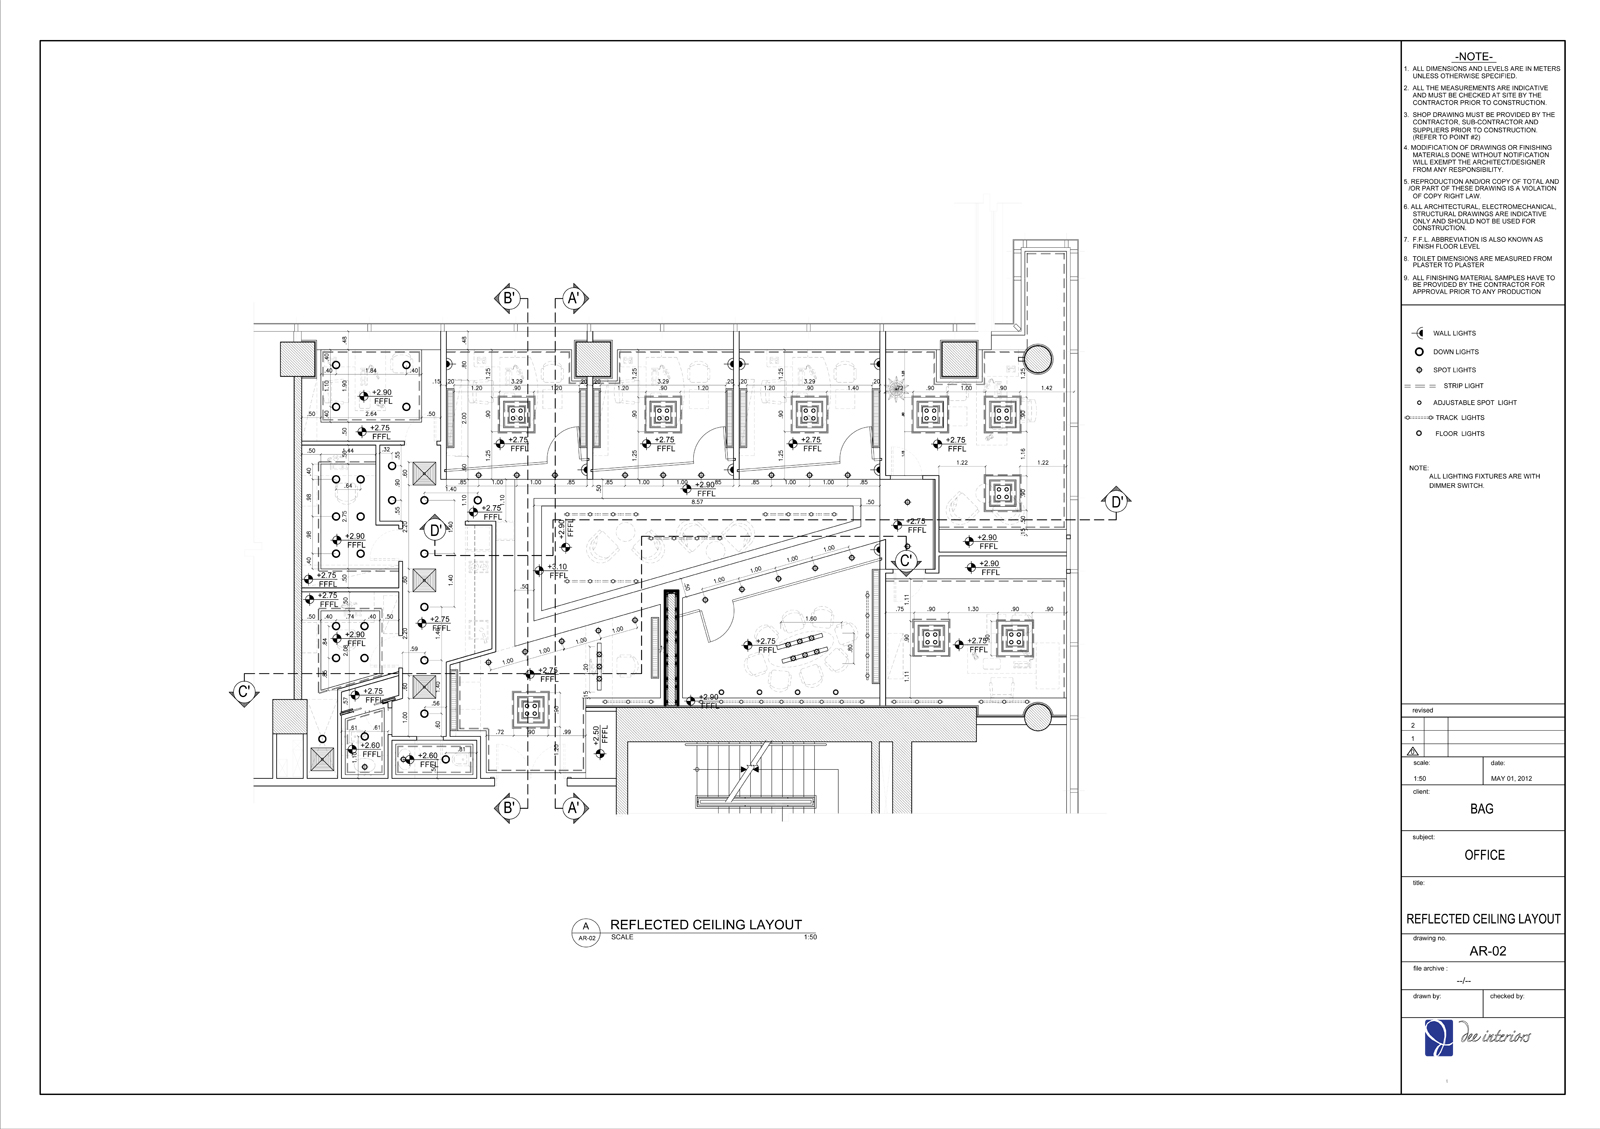 Ma Interior Design Technical Drawing